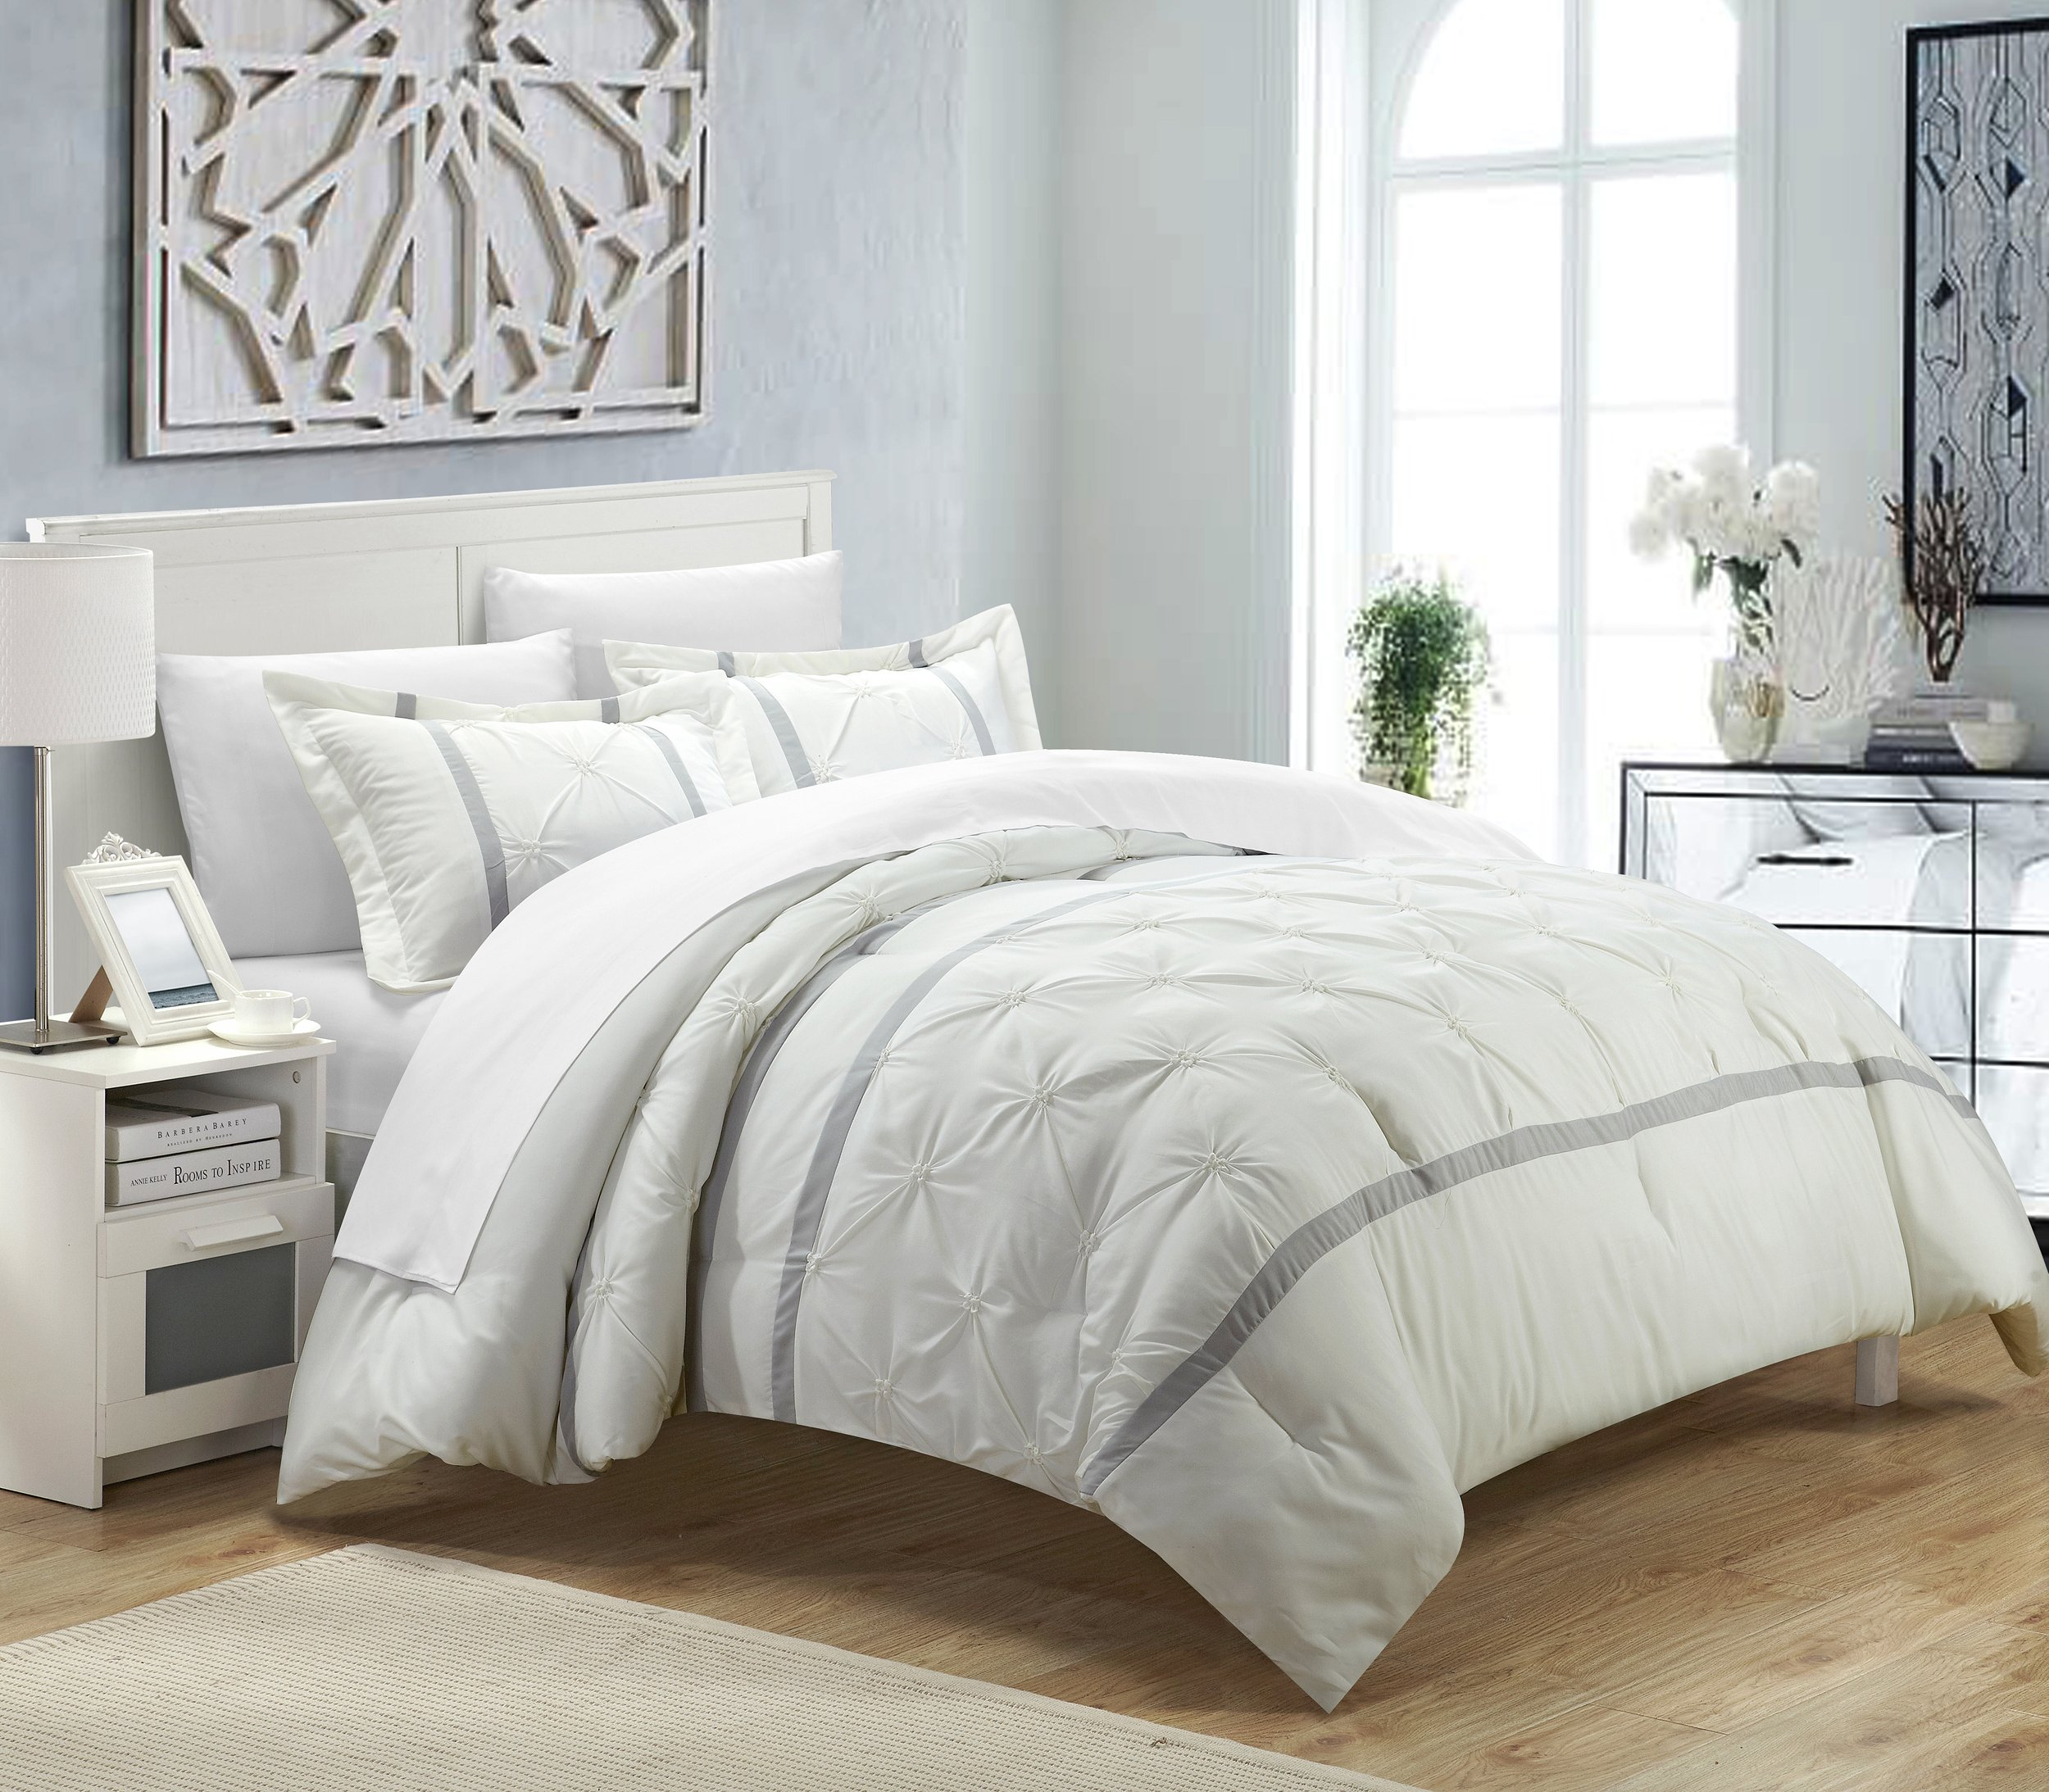 Chic Home 3 Piece Veronica Pinch Pleat Pintuck Duvet Cover Set, King, White